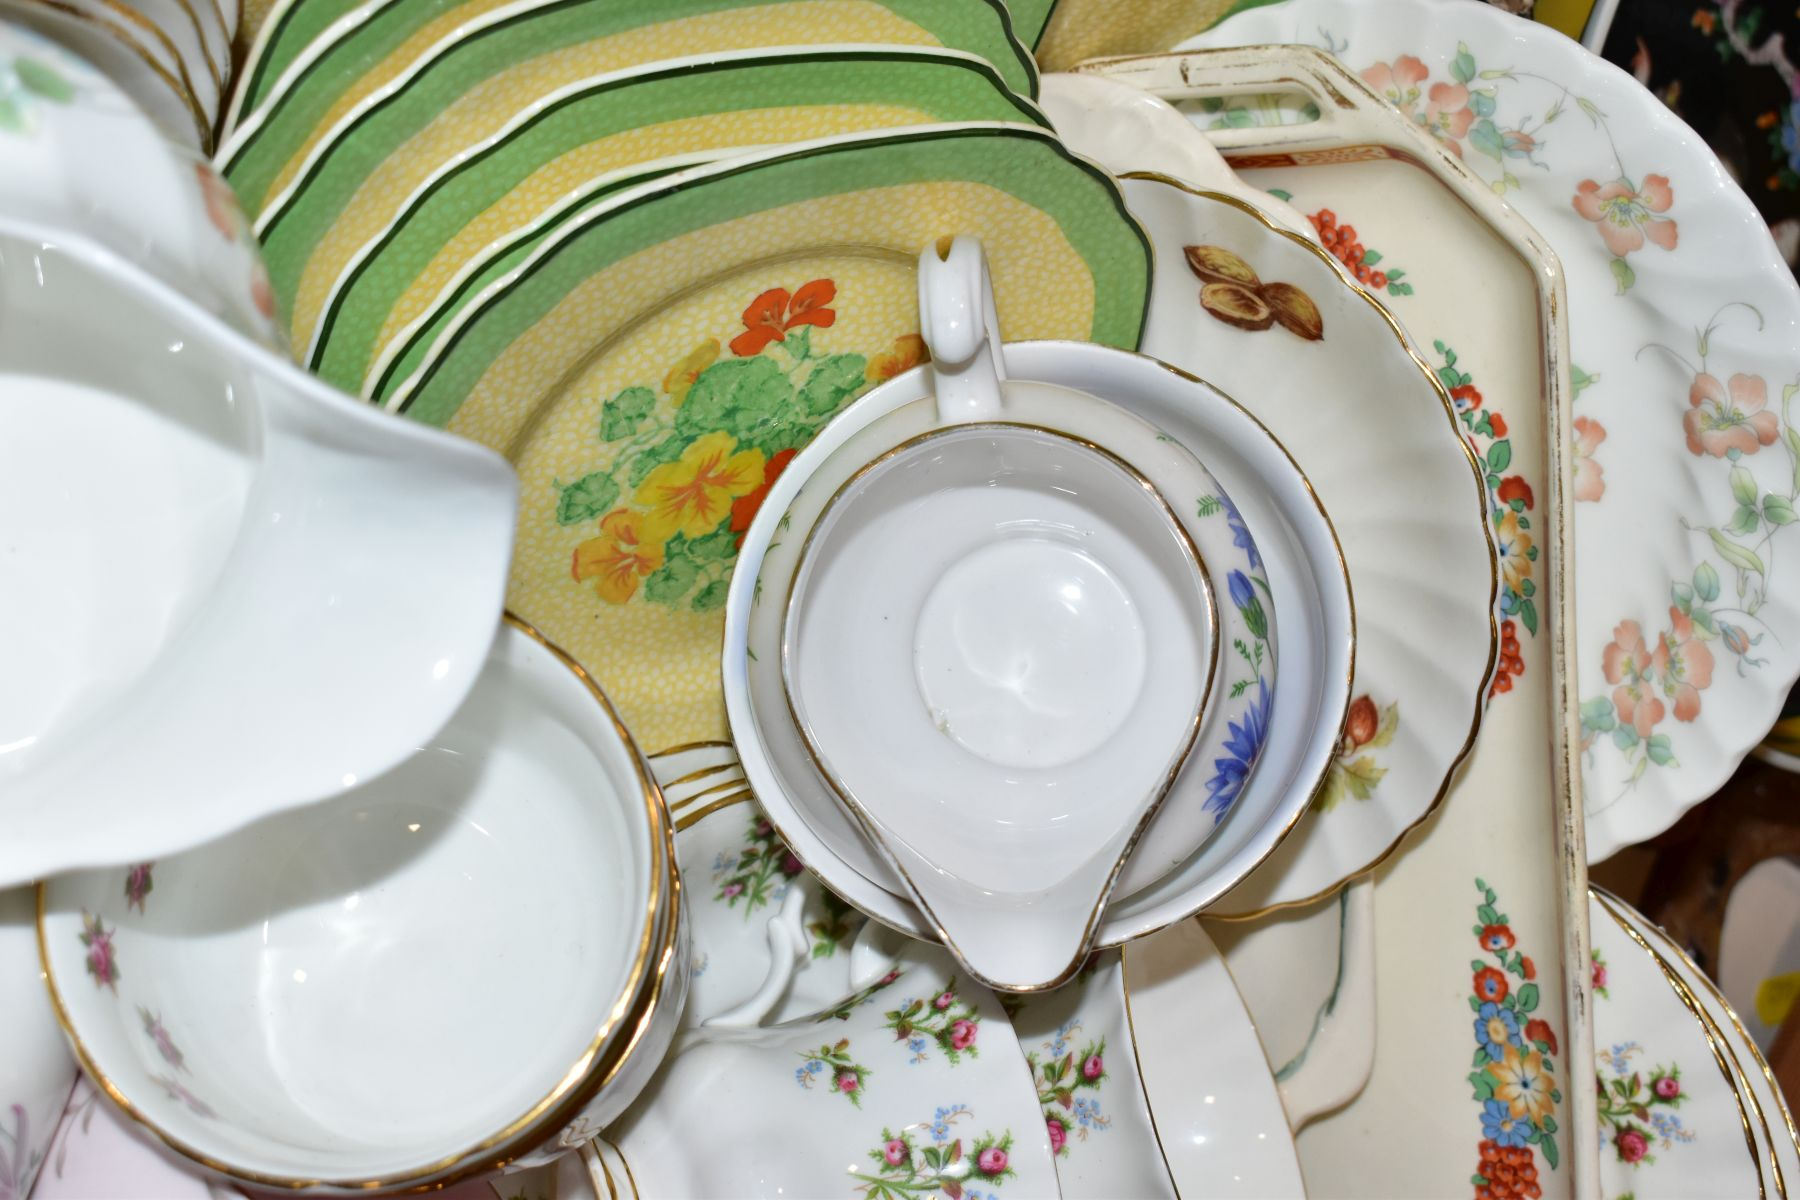 TWO BOXES OF WEDGWOOD ROYAL WORCESTER, ROYAL ALBERT AND TUSCAN CHINA TEA AND DINNER WARES, including - Image 7 of 10